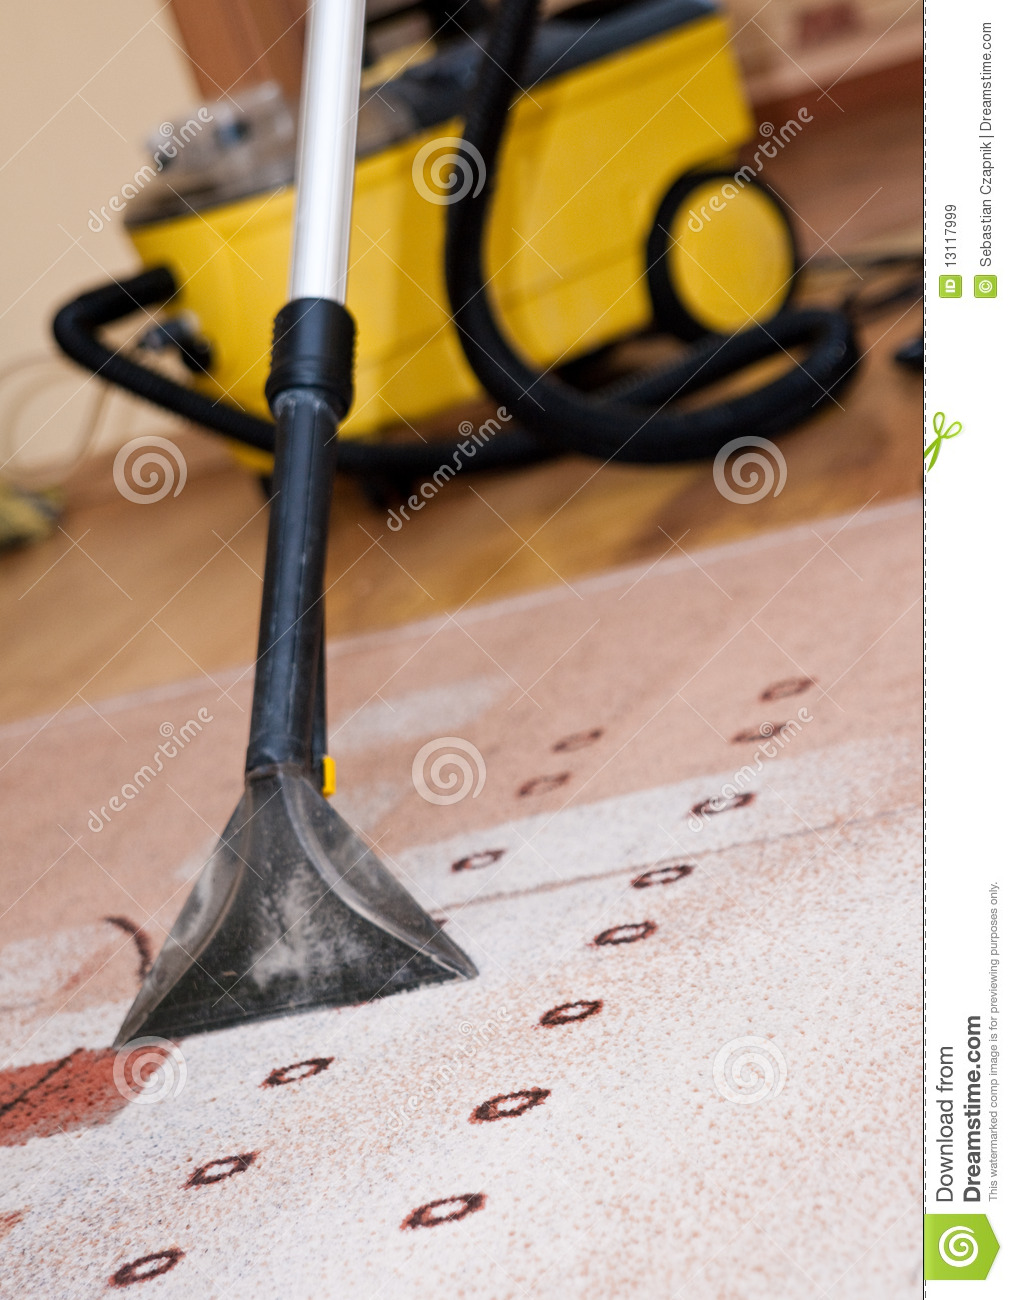 Professional Carpet Cleaning Royalty Free Stock Images Image 13117999